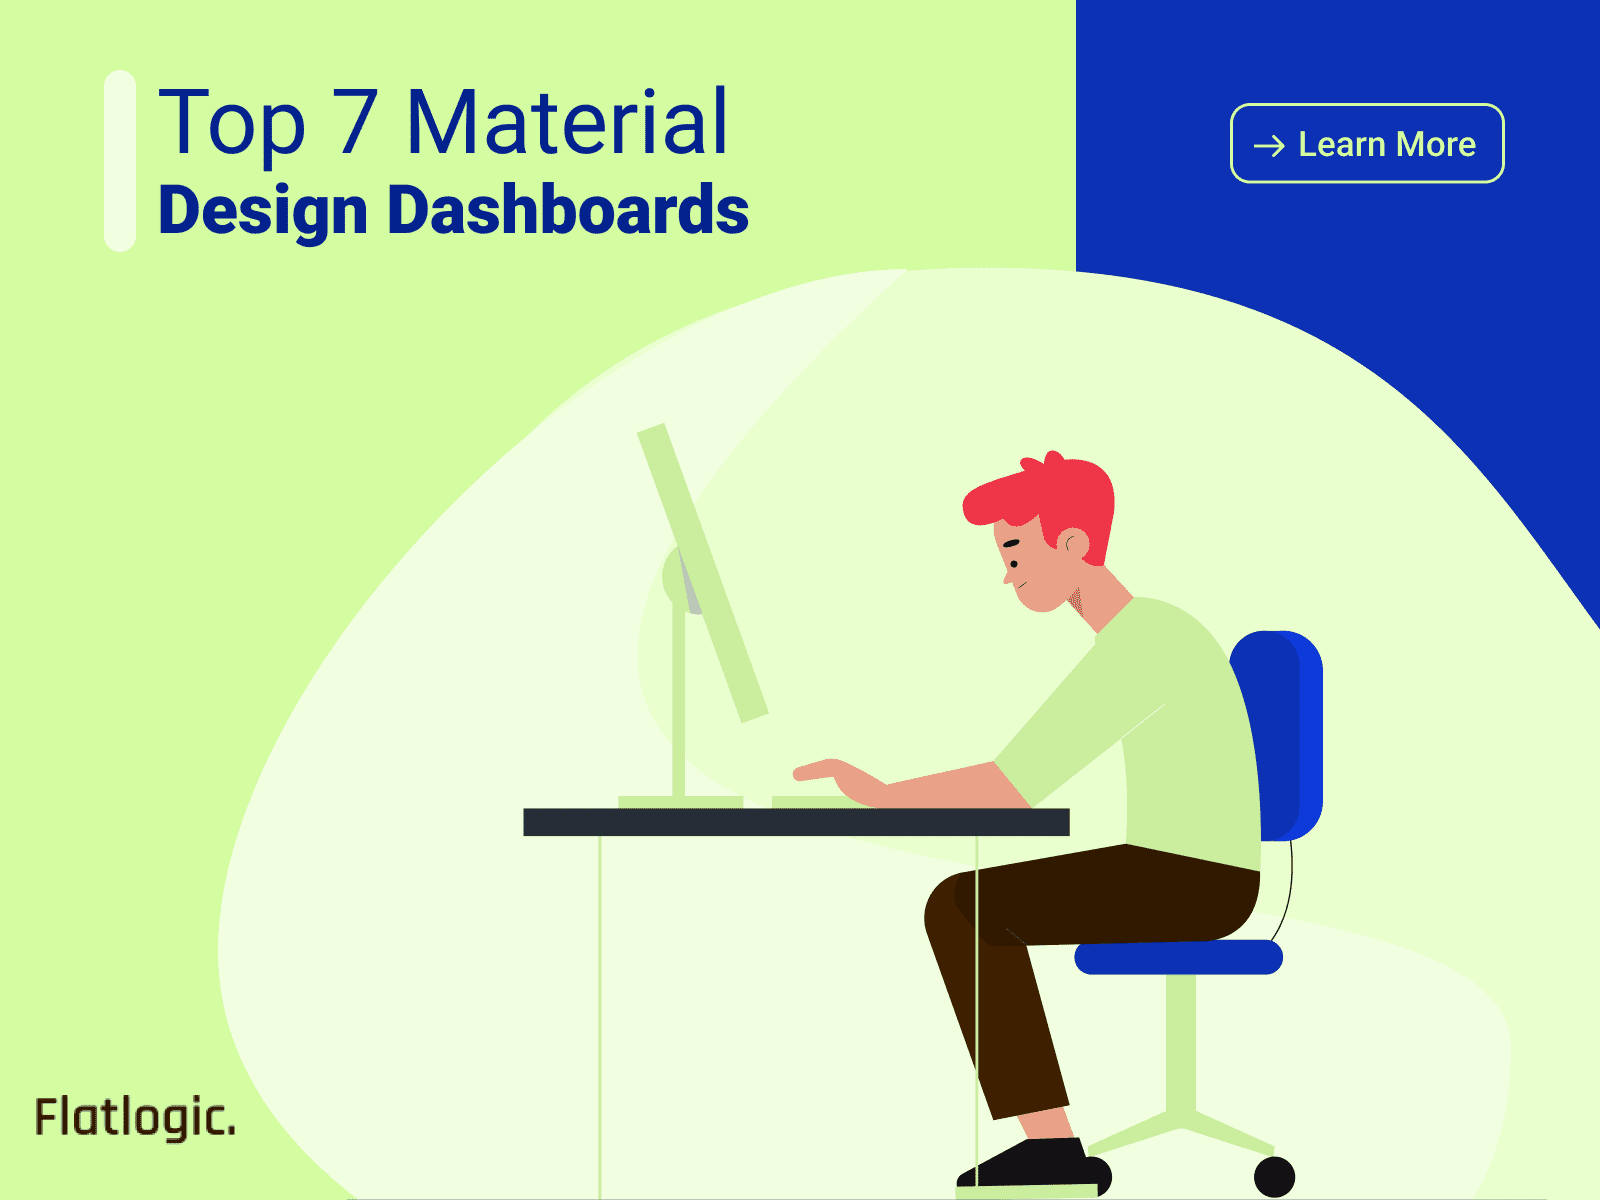 Top 7 Material Design Dashboards